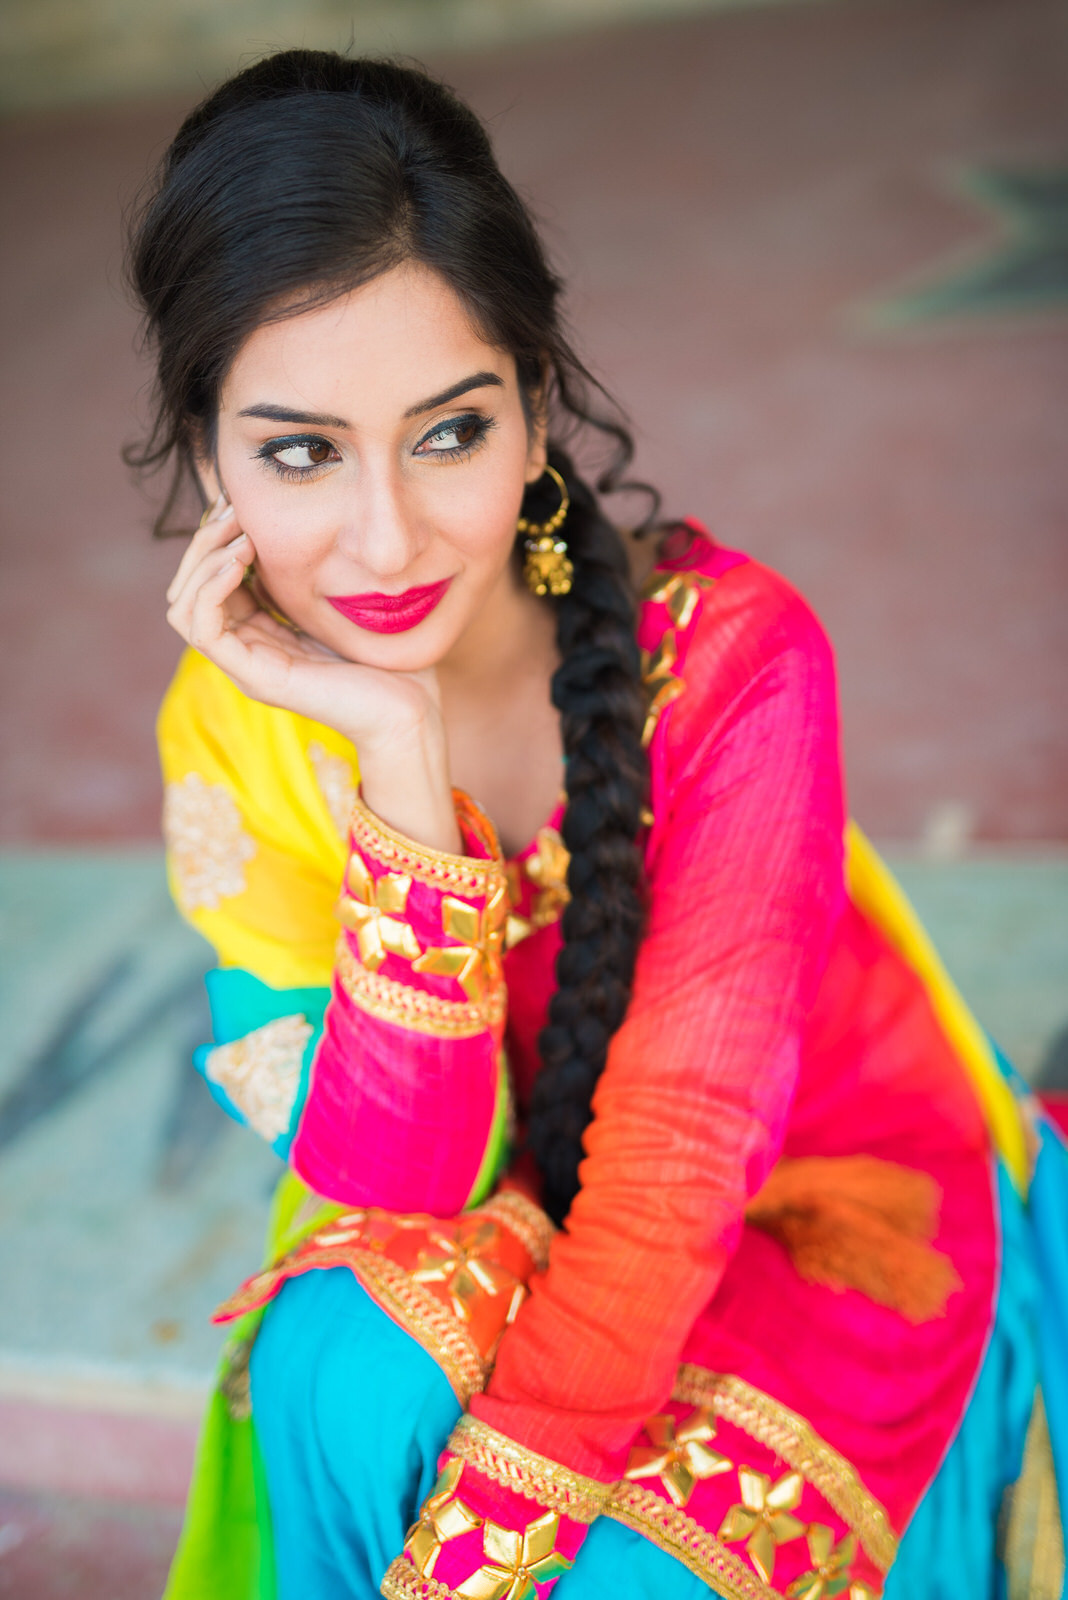 Chirag Thakur Punjabi Female Model Posin